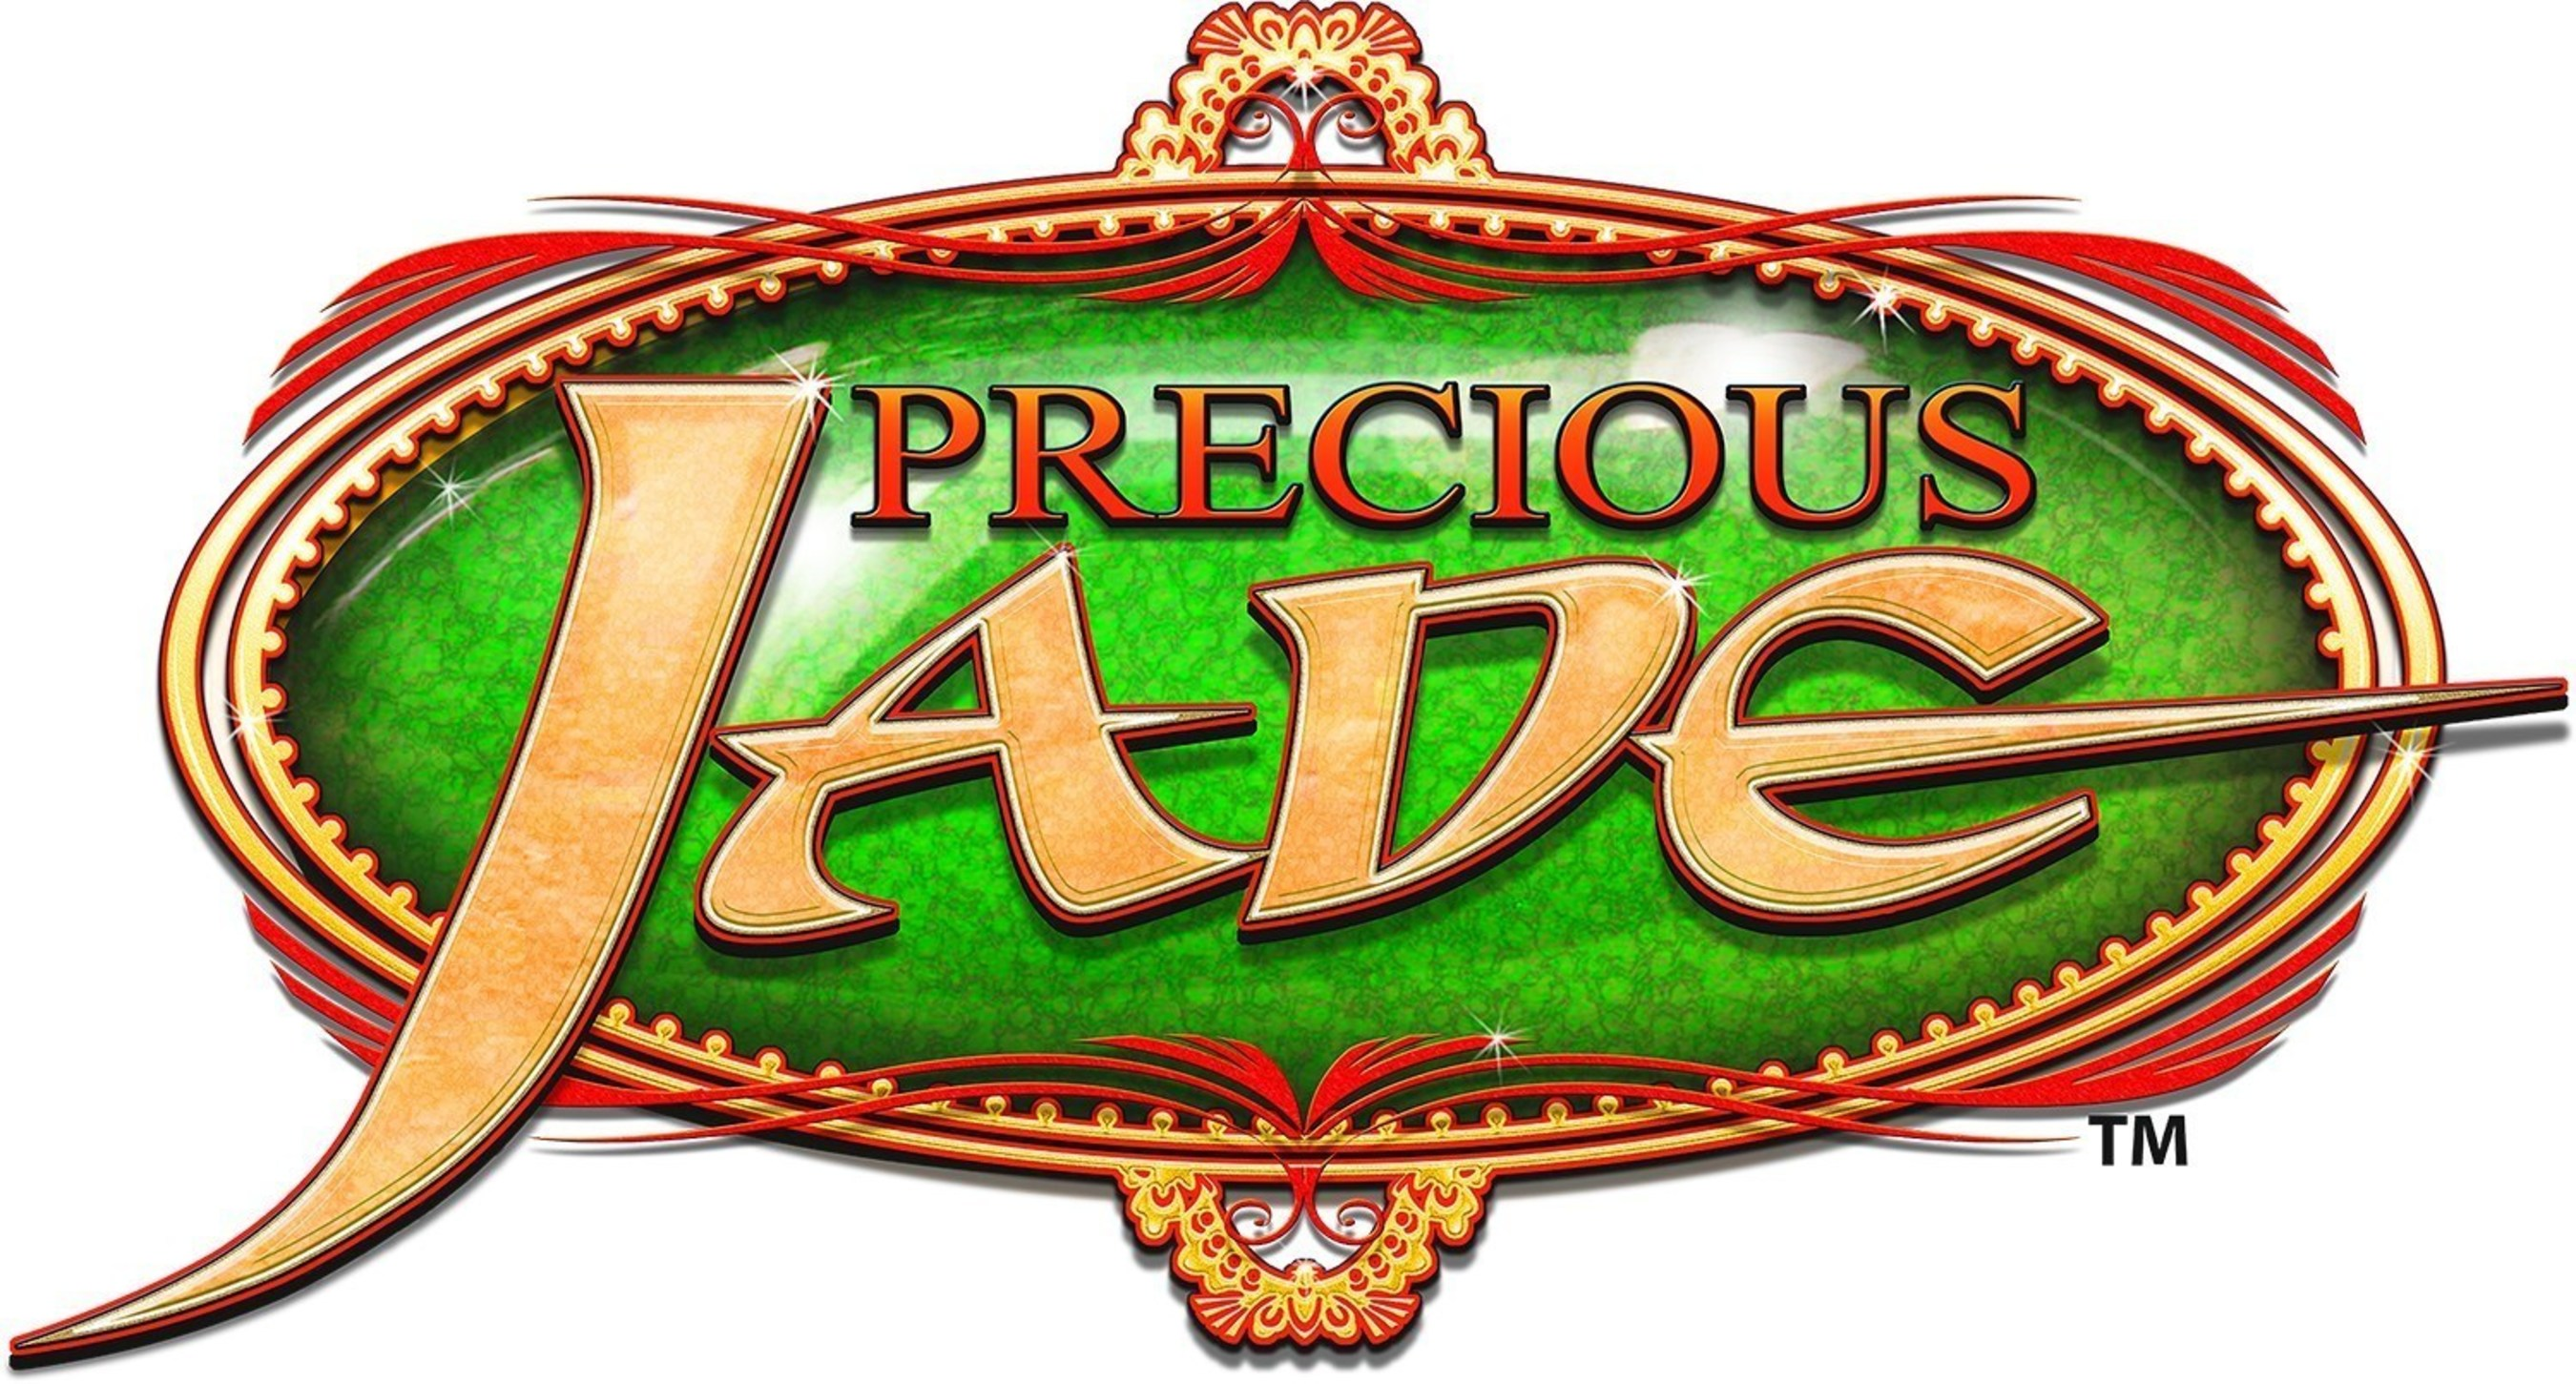 Angel of the Winds Casino patrons will explore a land of fantastical beauty with the dazzling warrior Precious Jade(TM), who leads players through a journey of exciting Free Games with re-triggers and abundant Mystery Stacks.